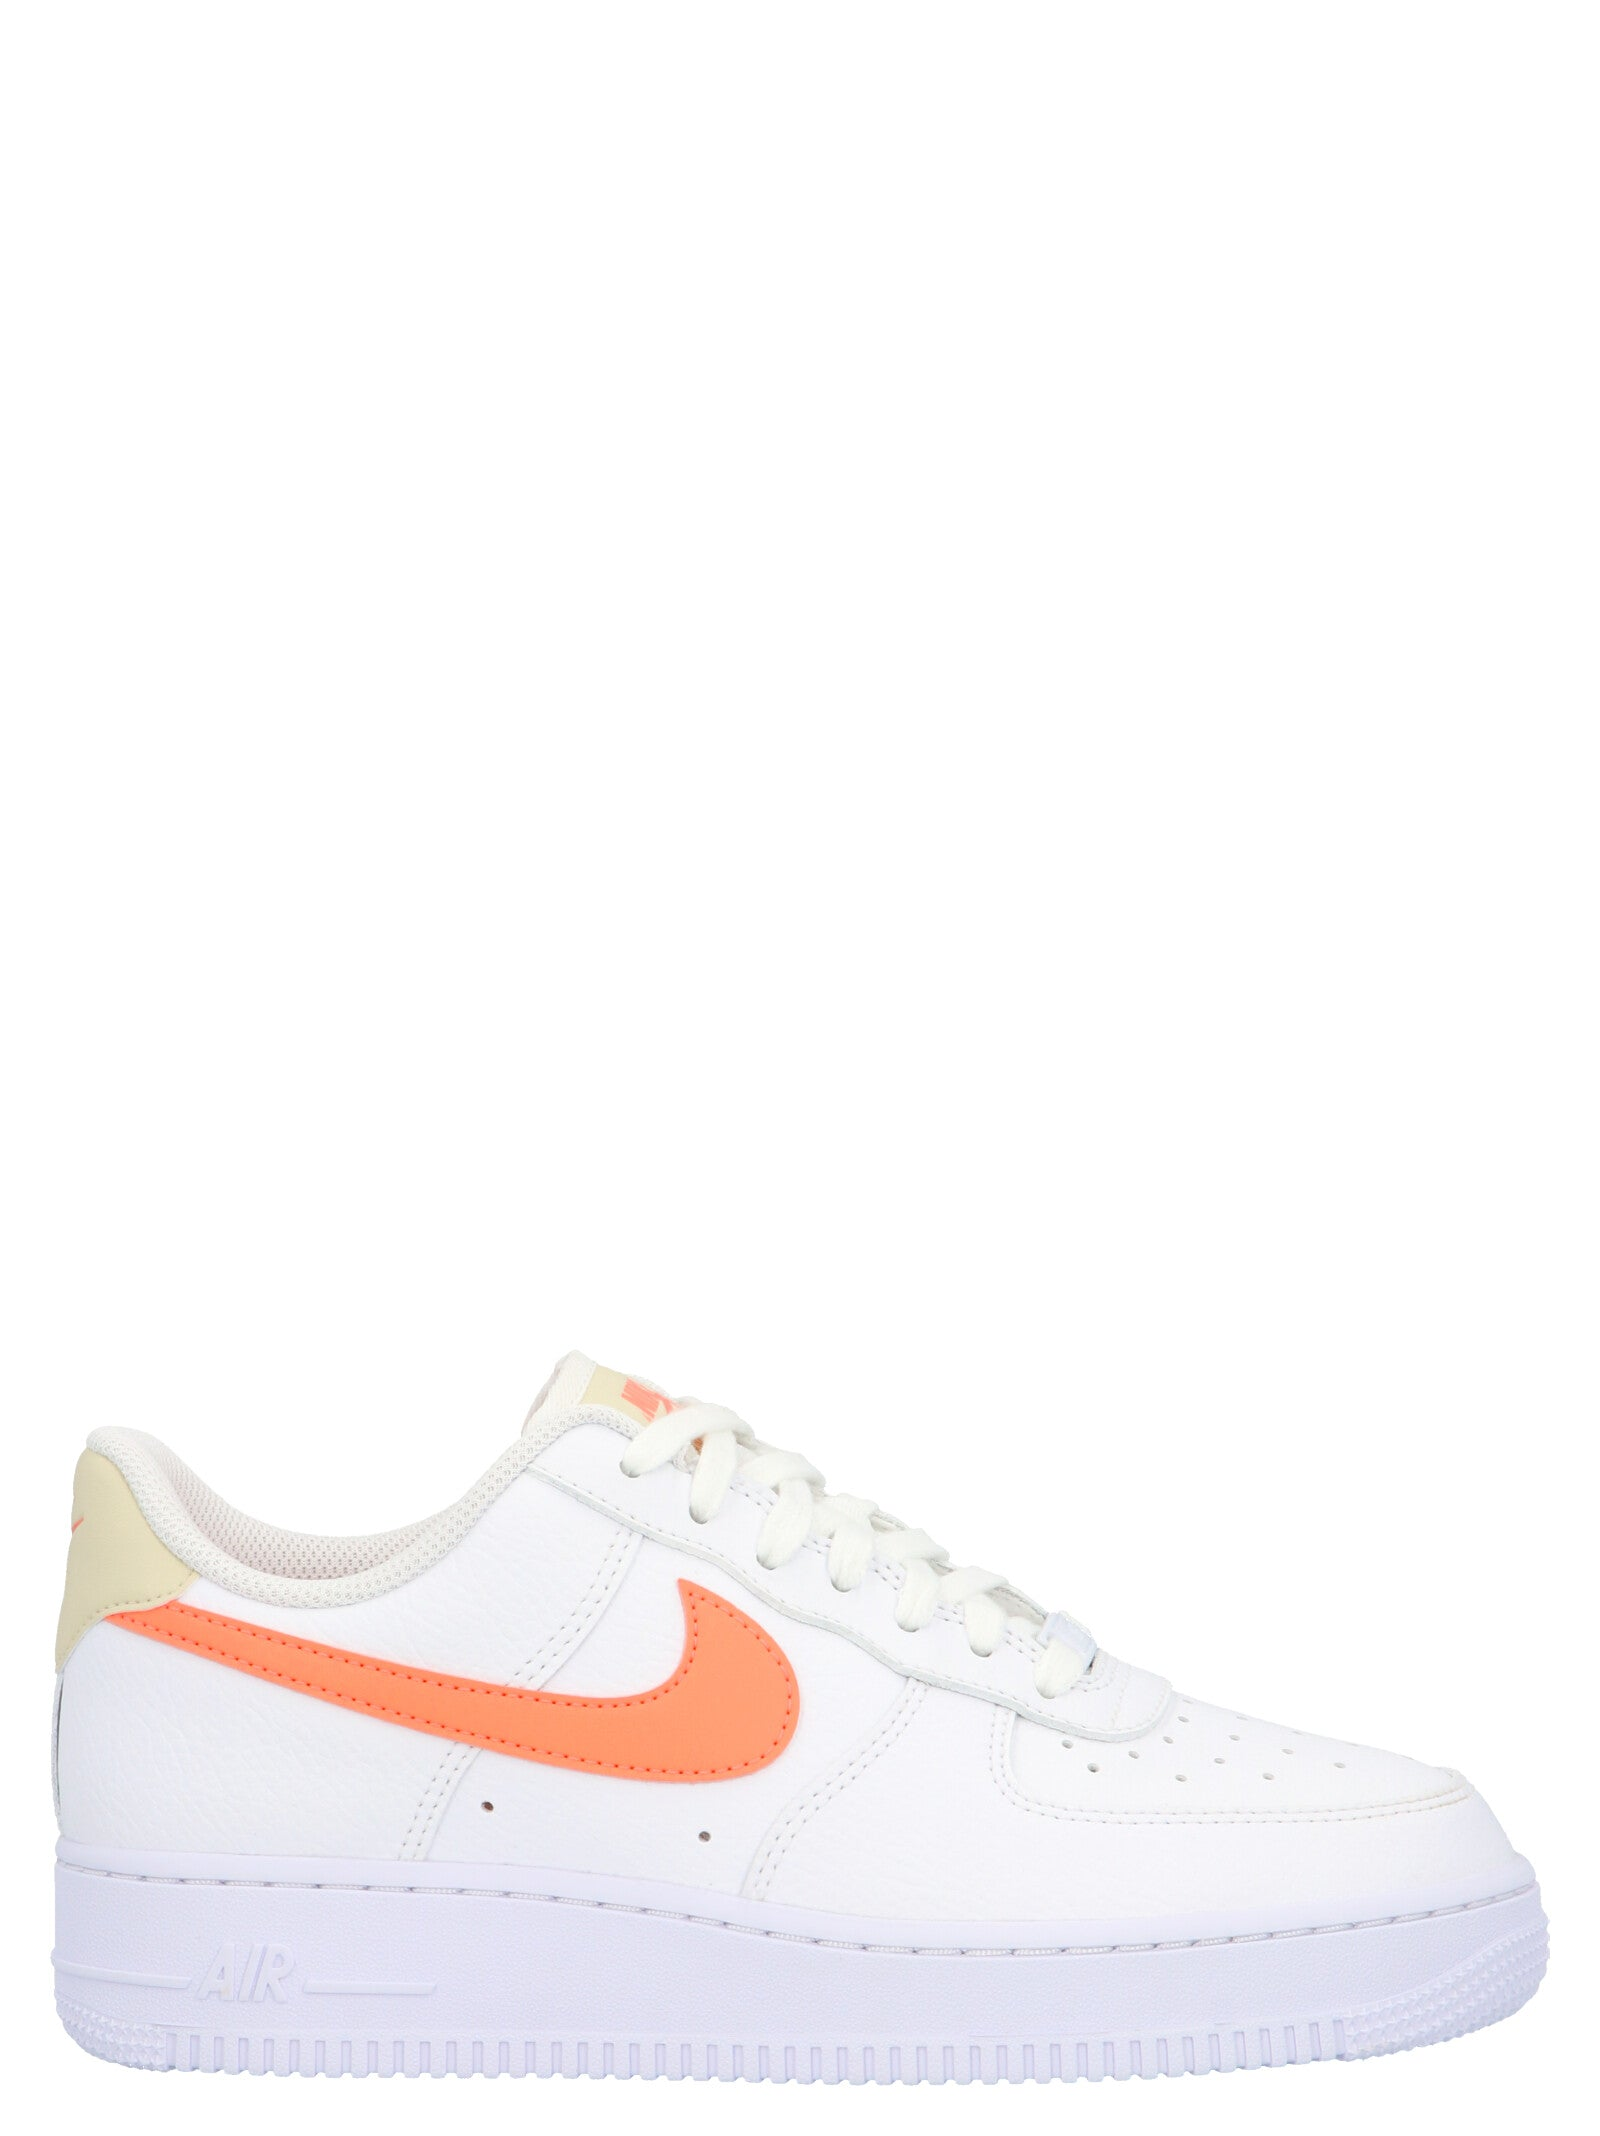 Nike Leathers NIKE AIR FORCE 1 '07 SNEAKERS